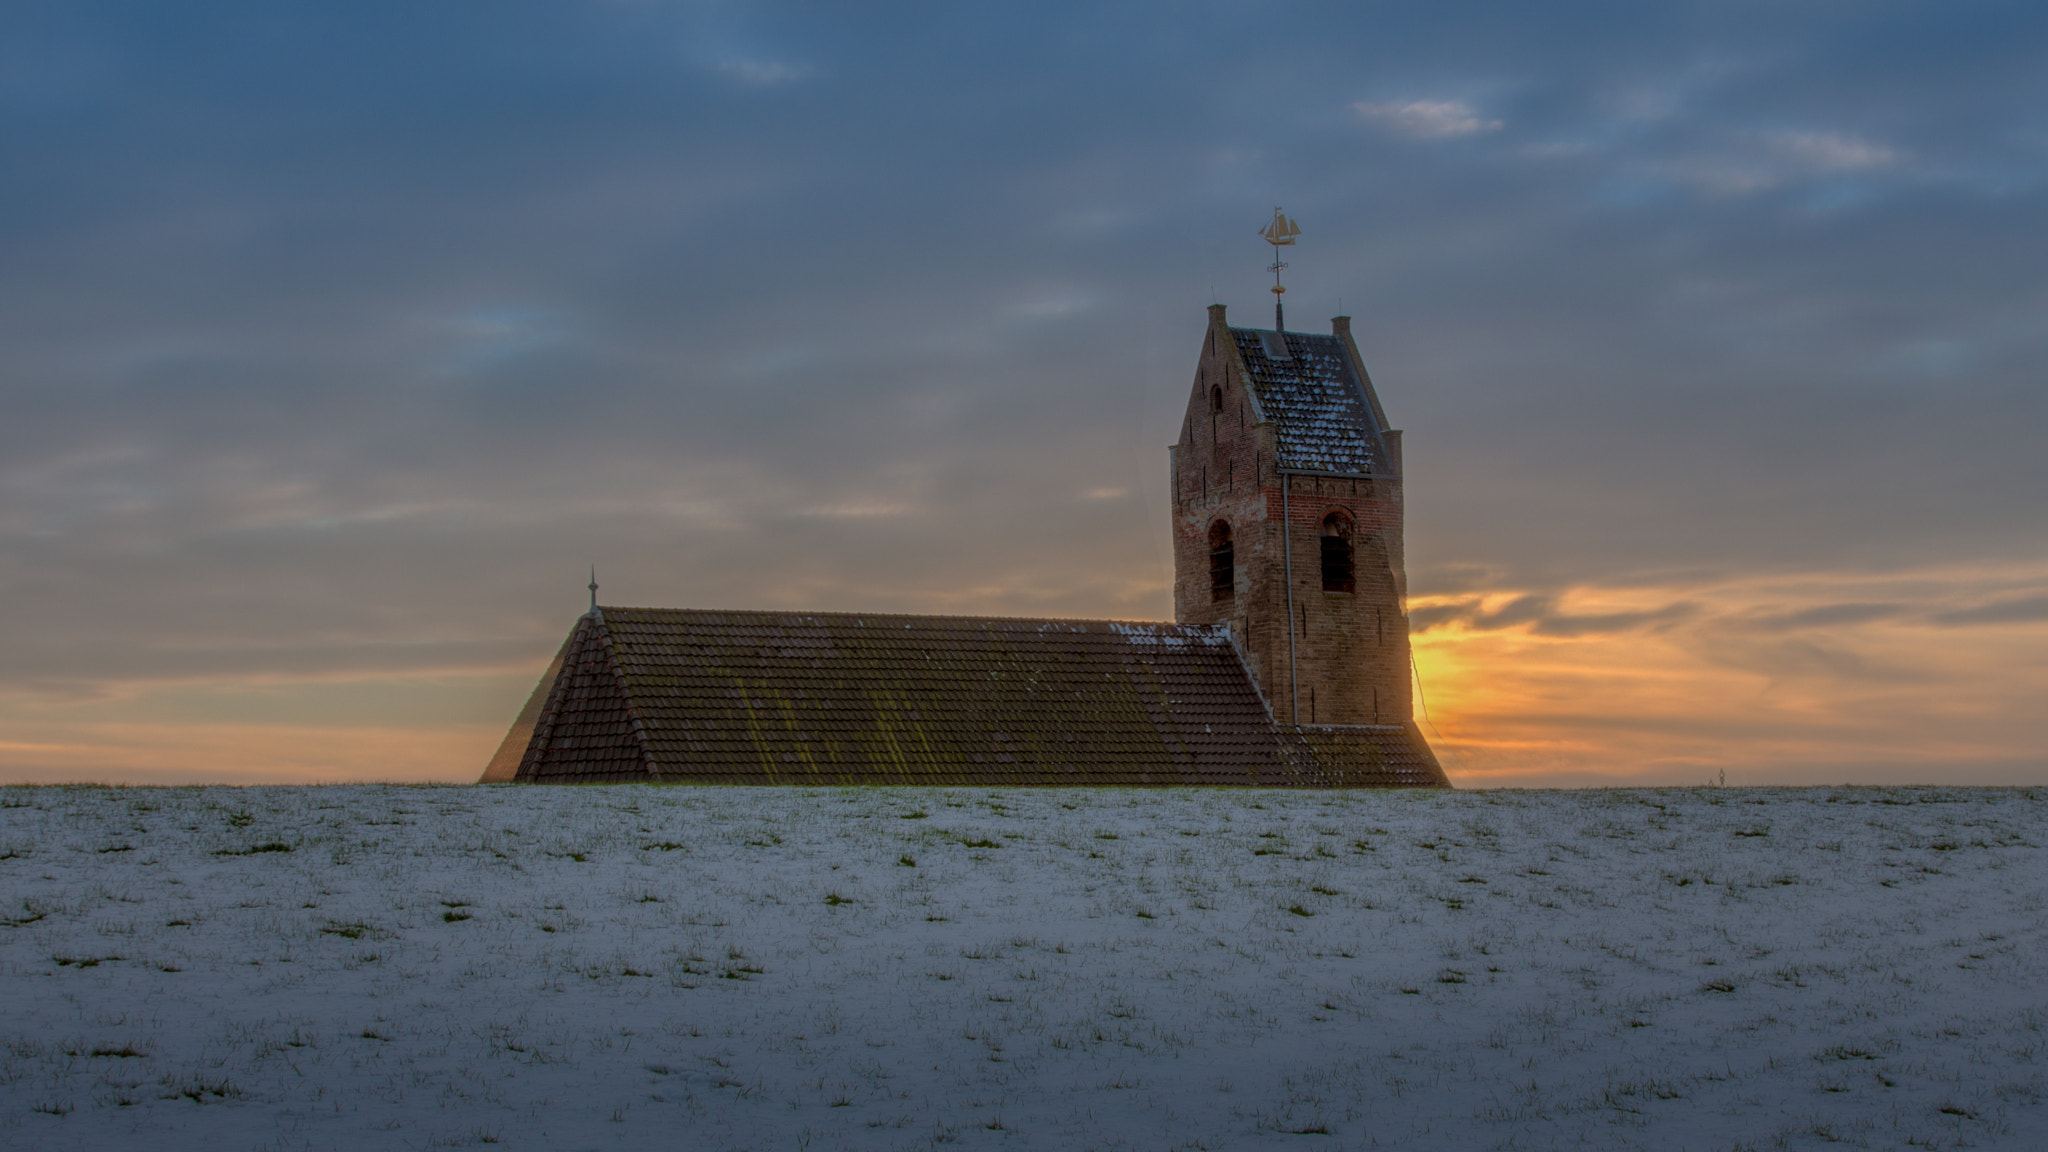 Photograph Church Wierum by Hoite Jouke on 500px